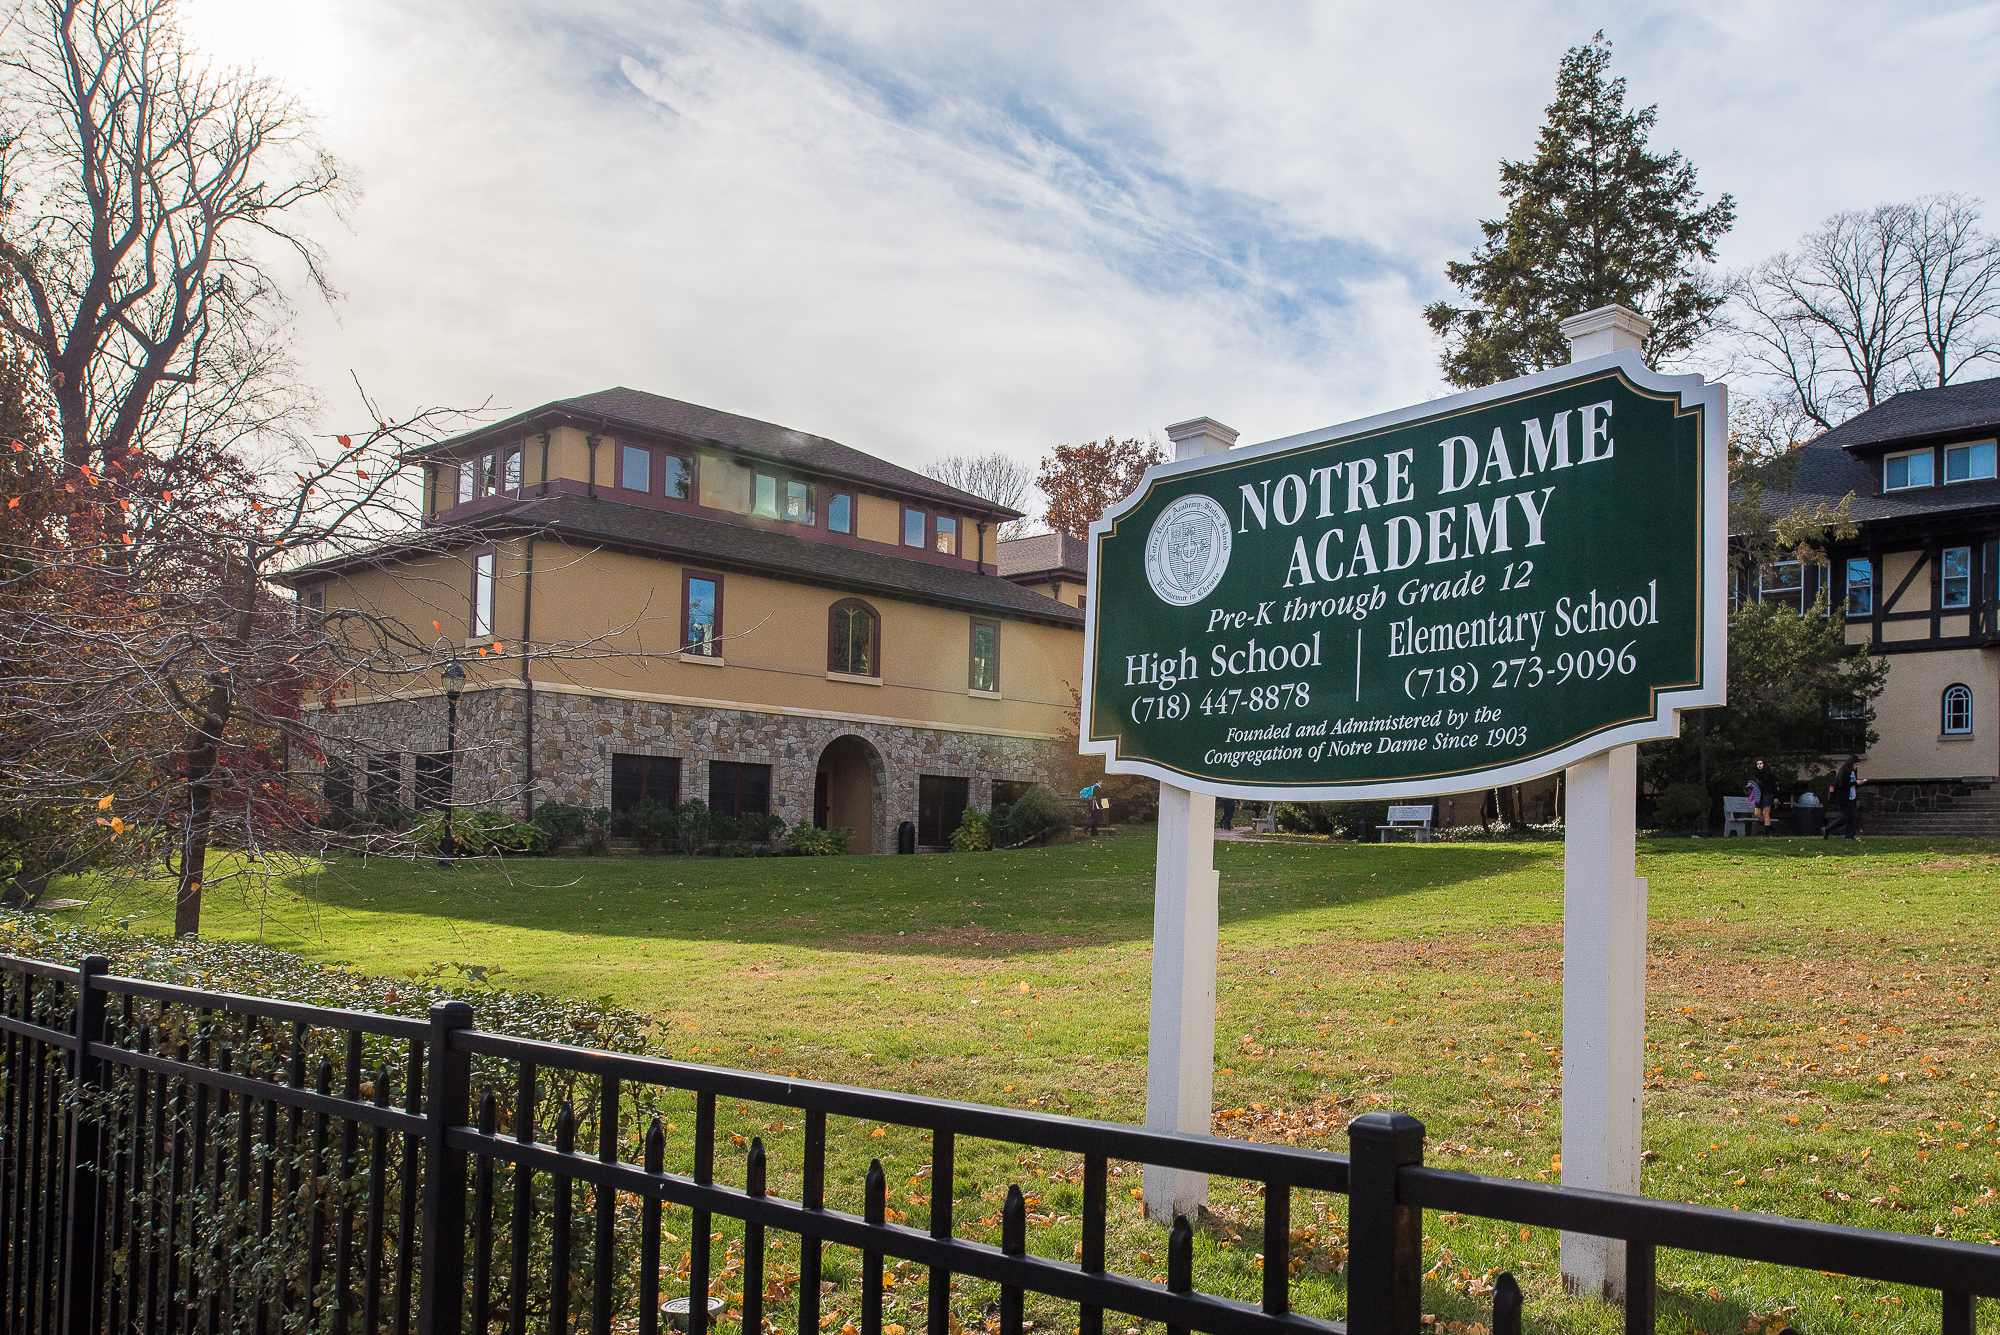 Exterior of the Notre Dame Academy on Staten Island, NY